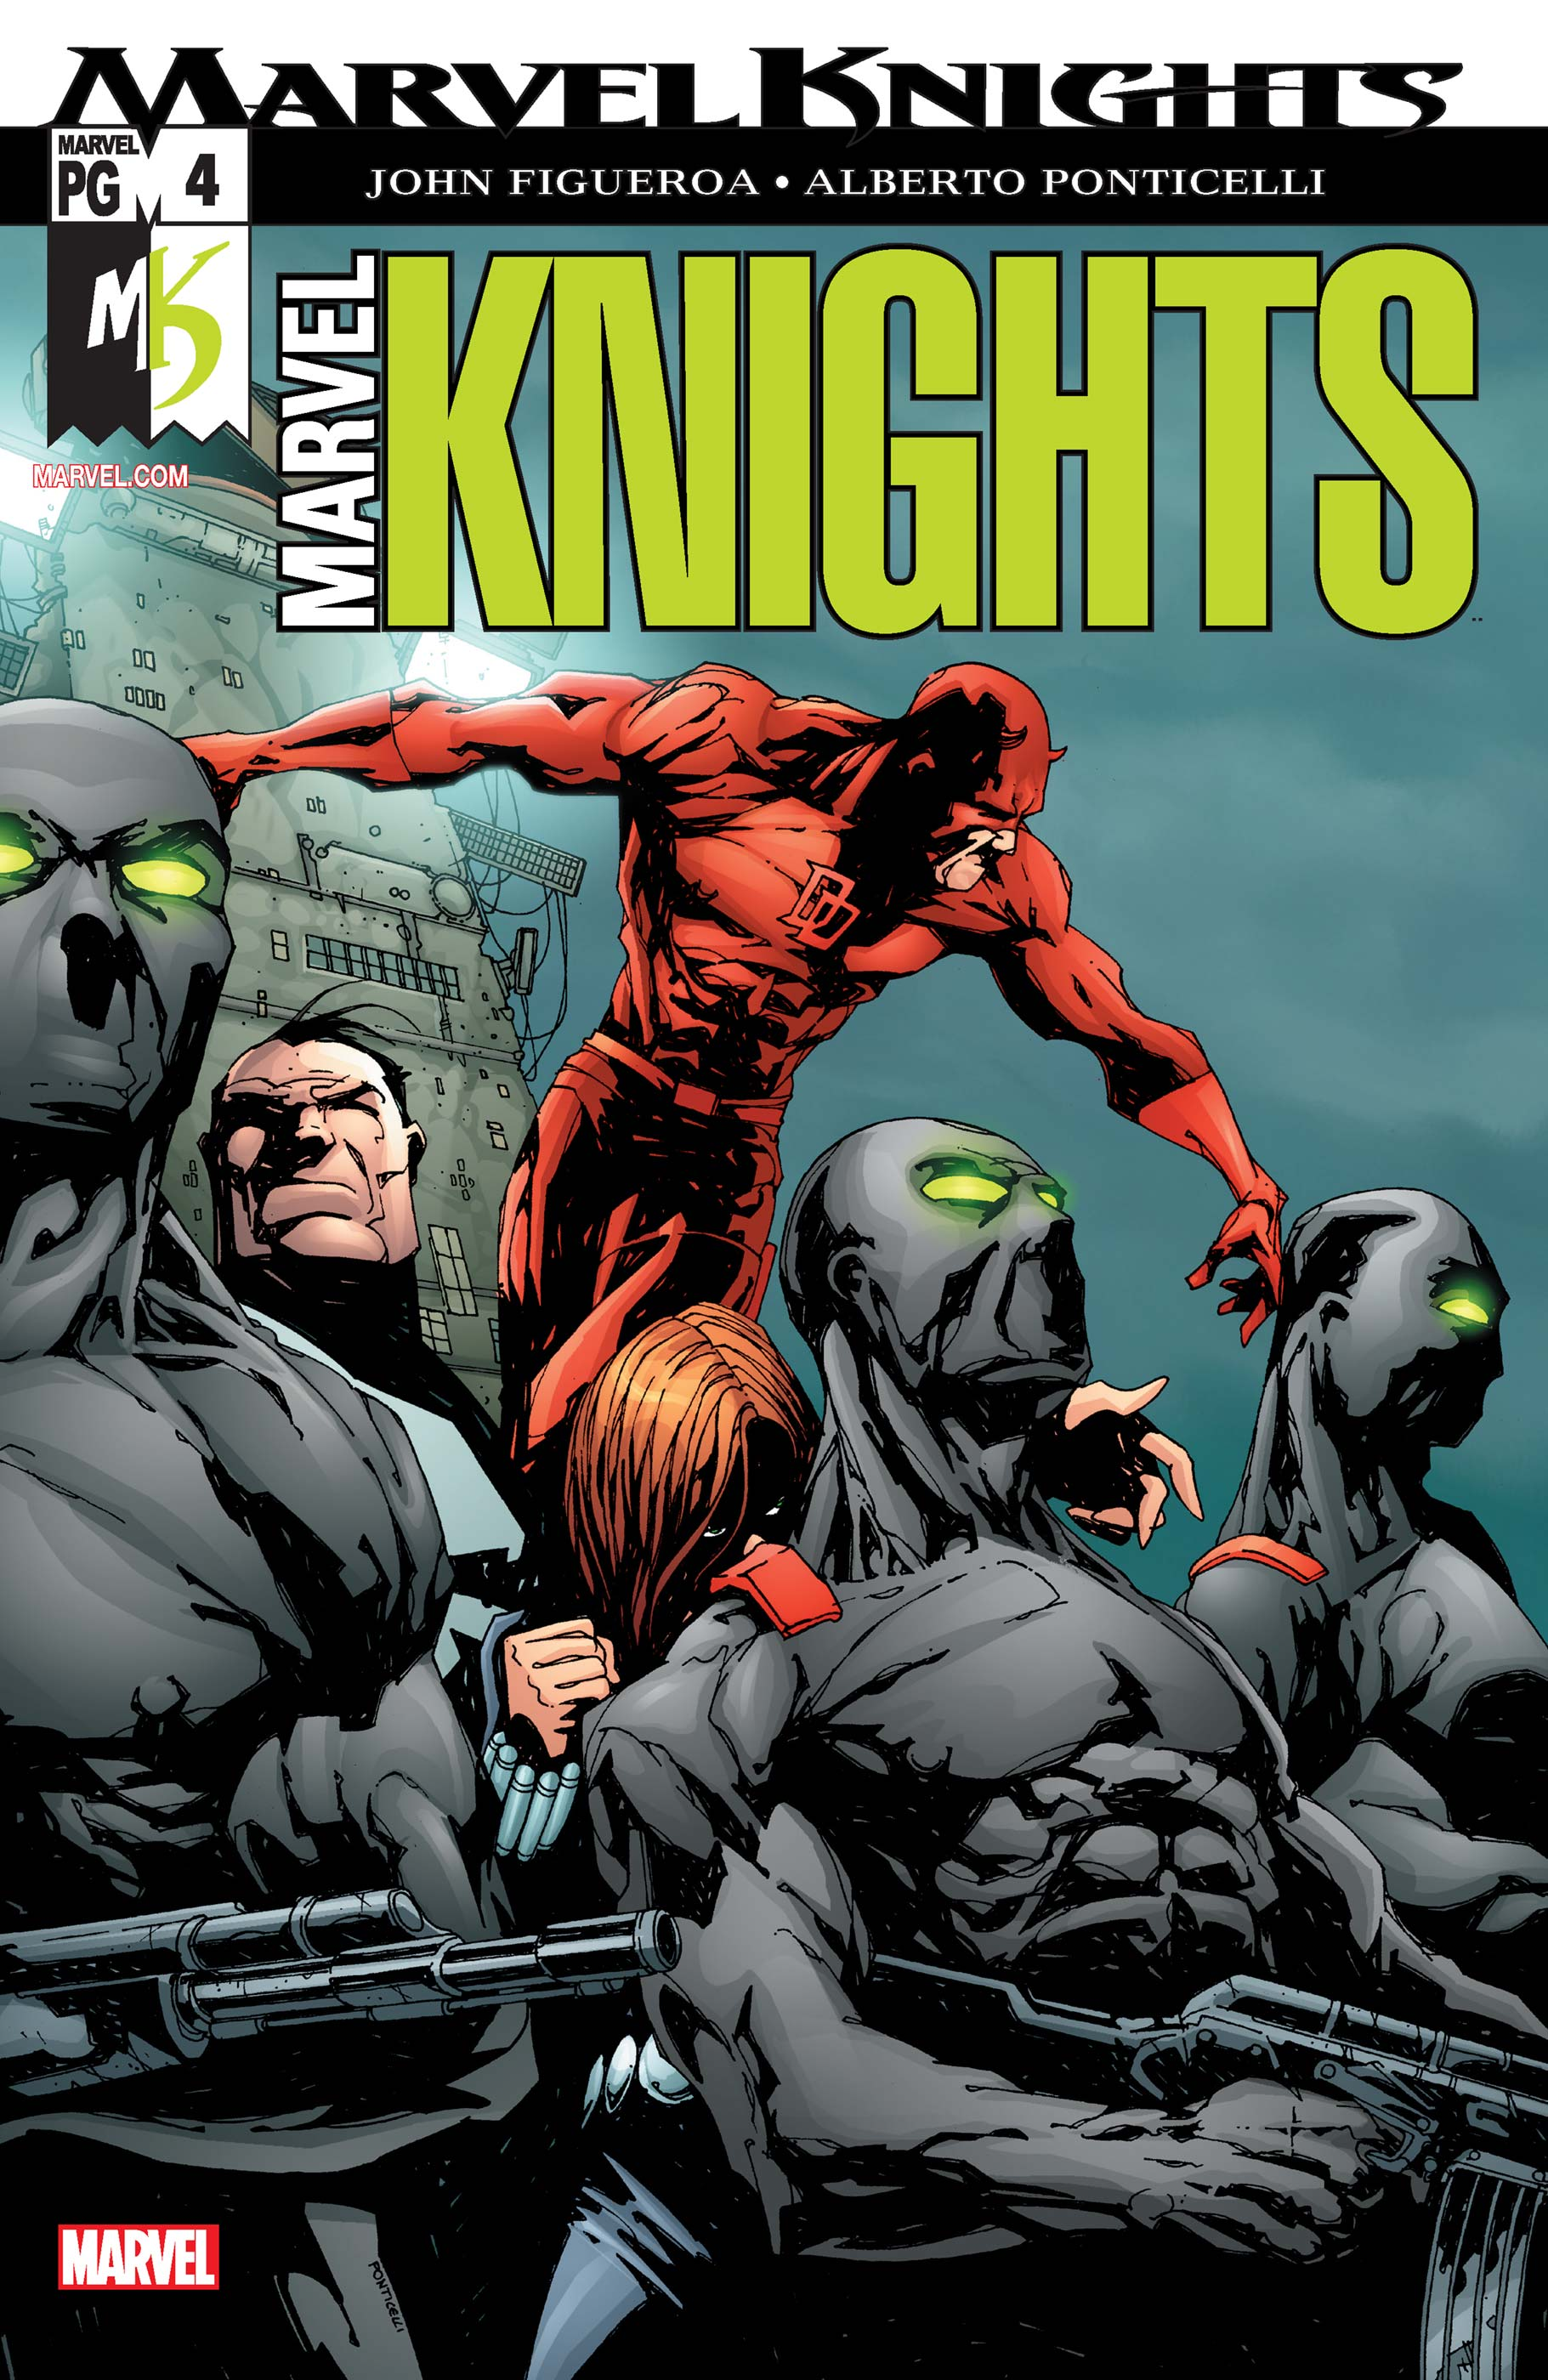 Marvel Knights (2002) #4